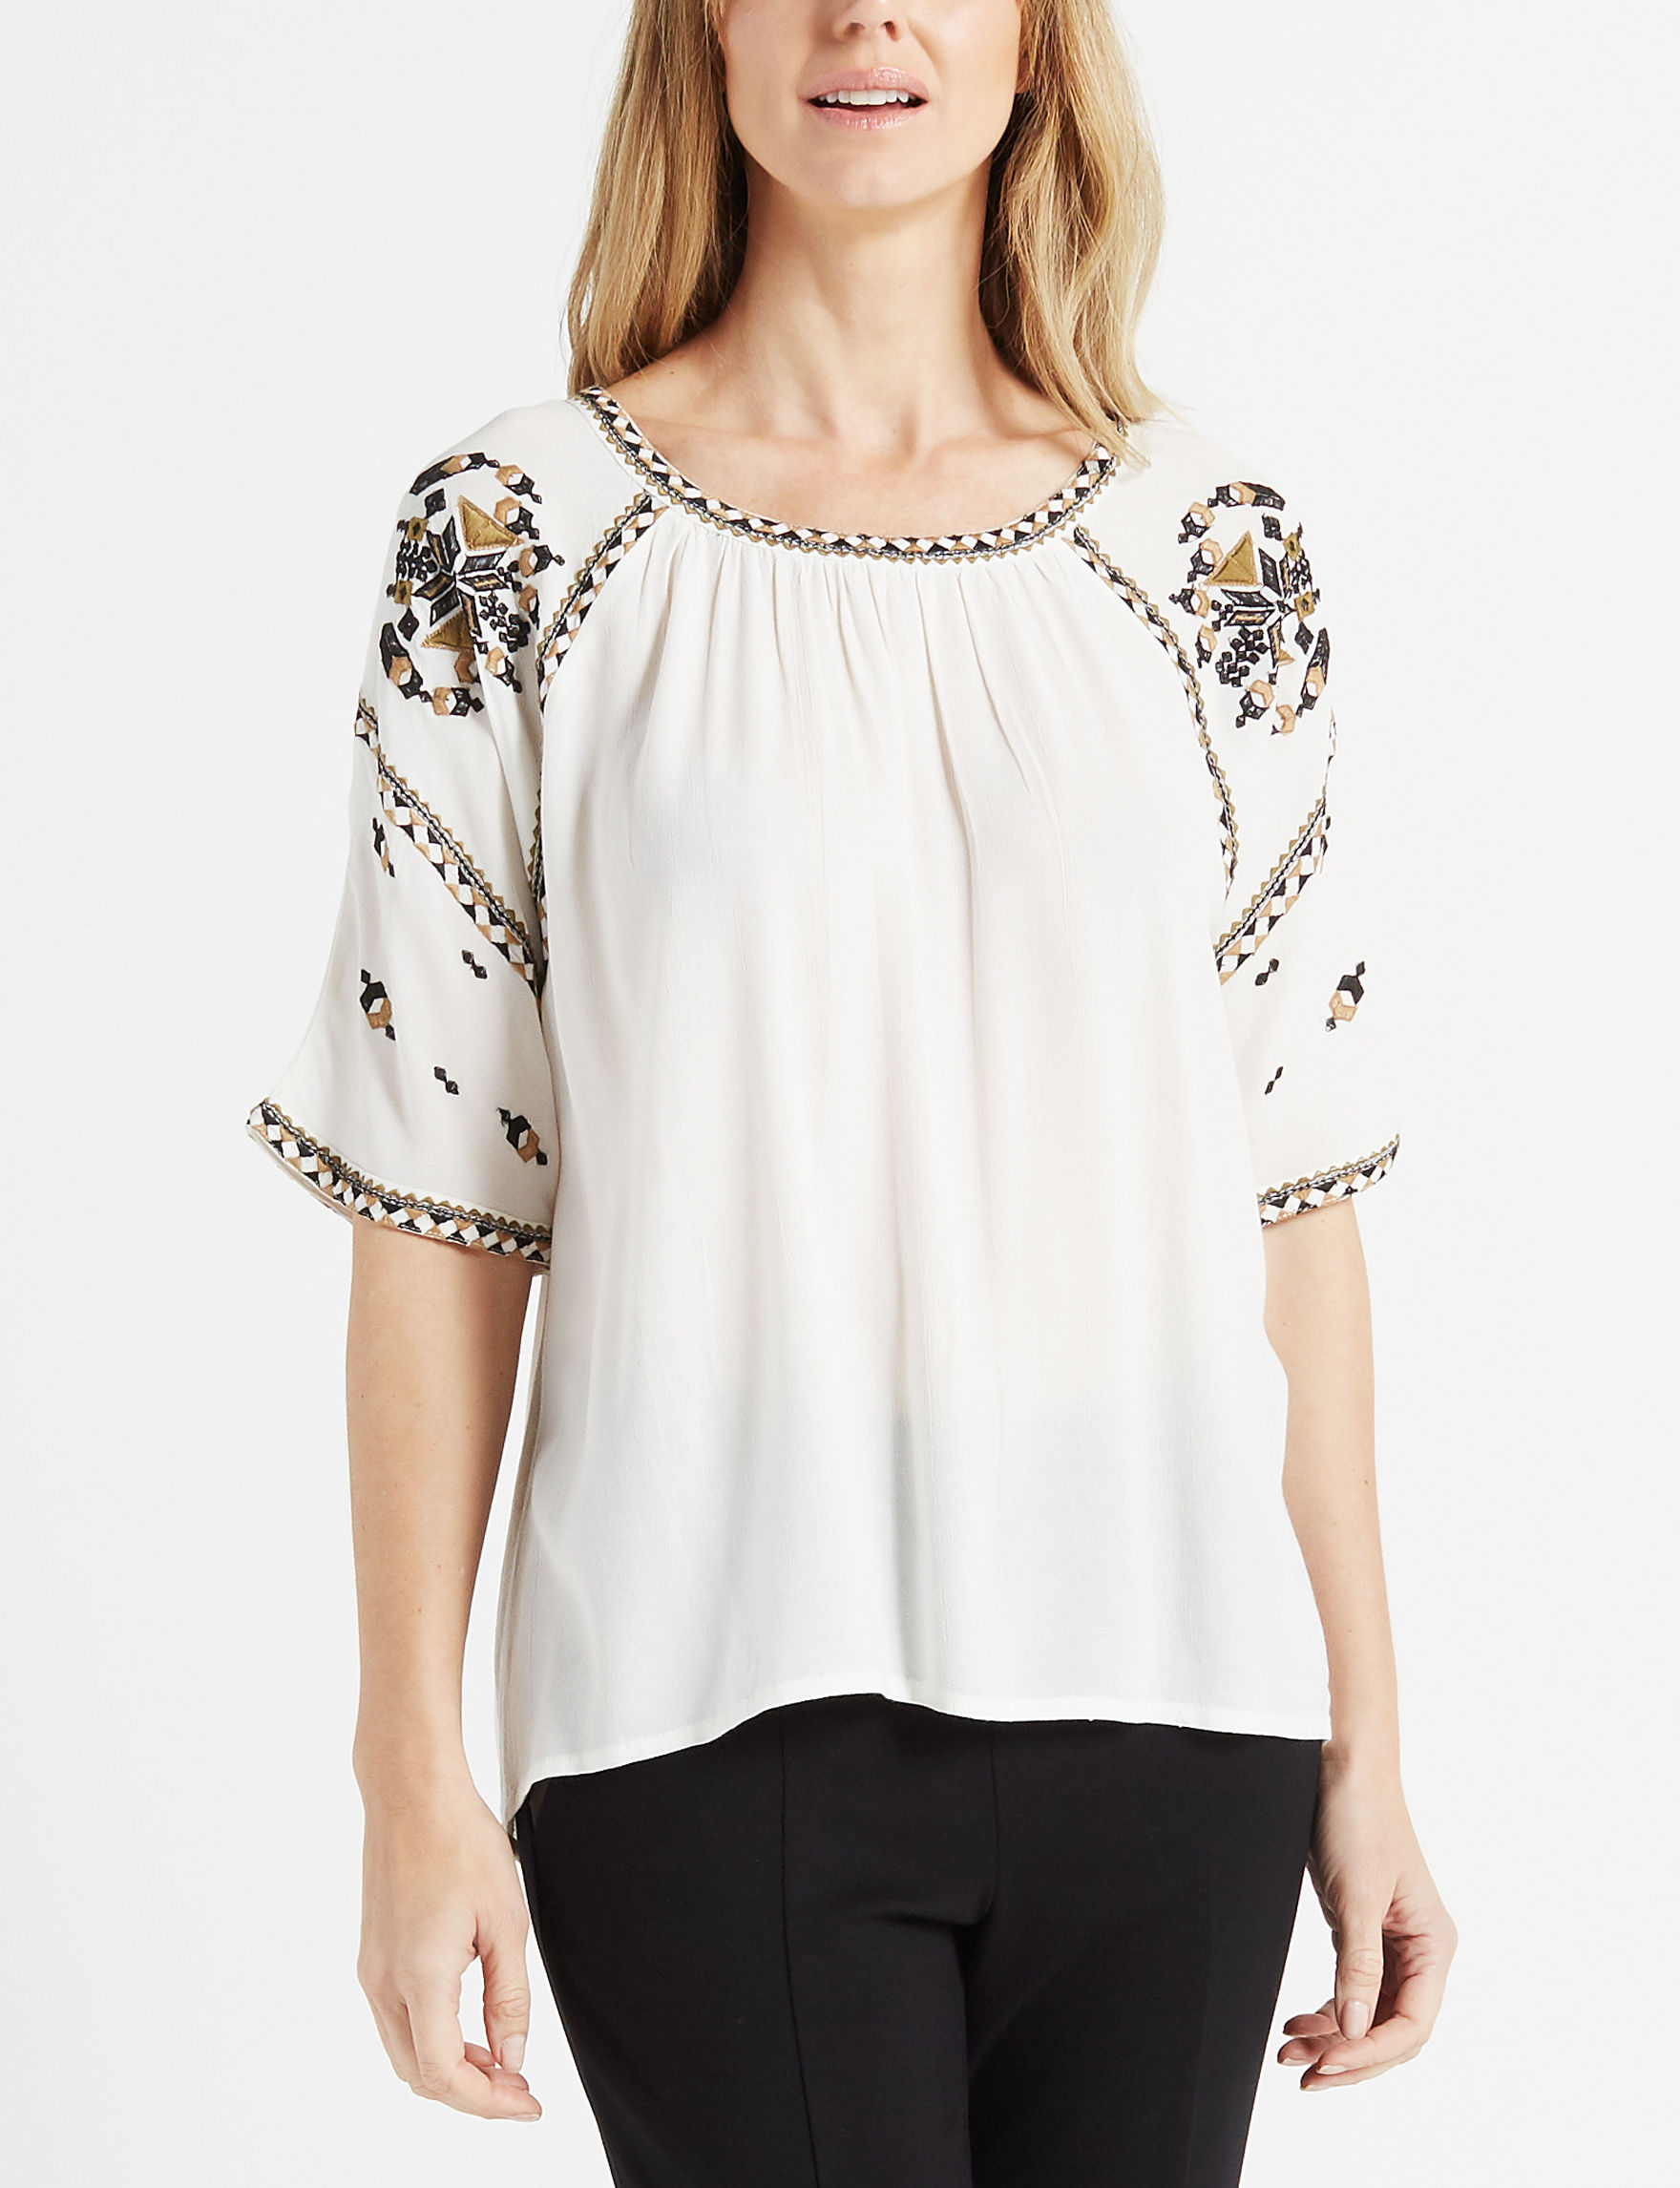 With Love White Shirts & Blouses